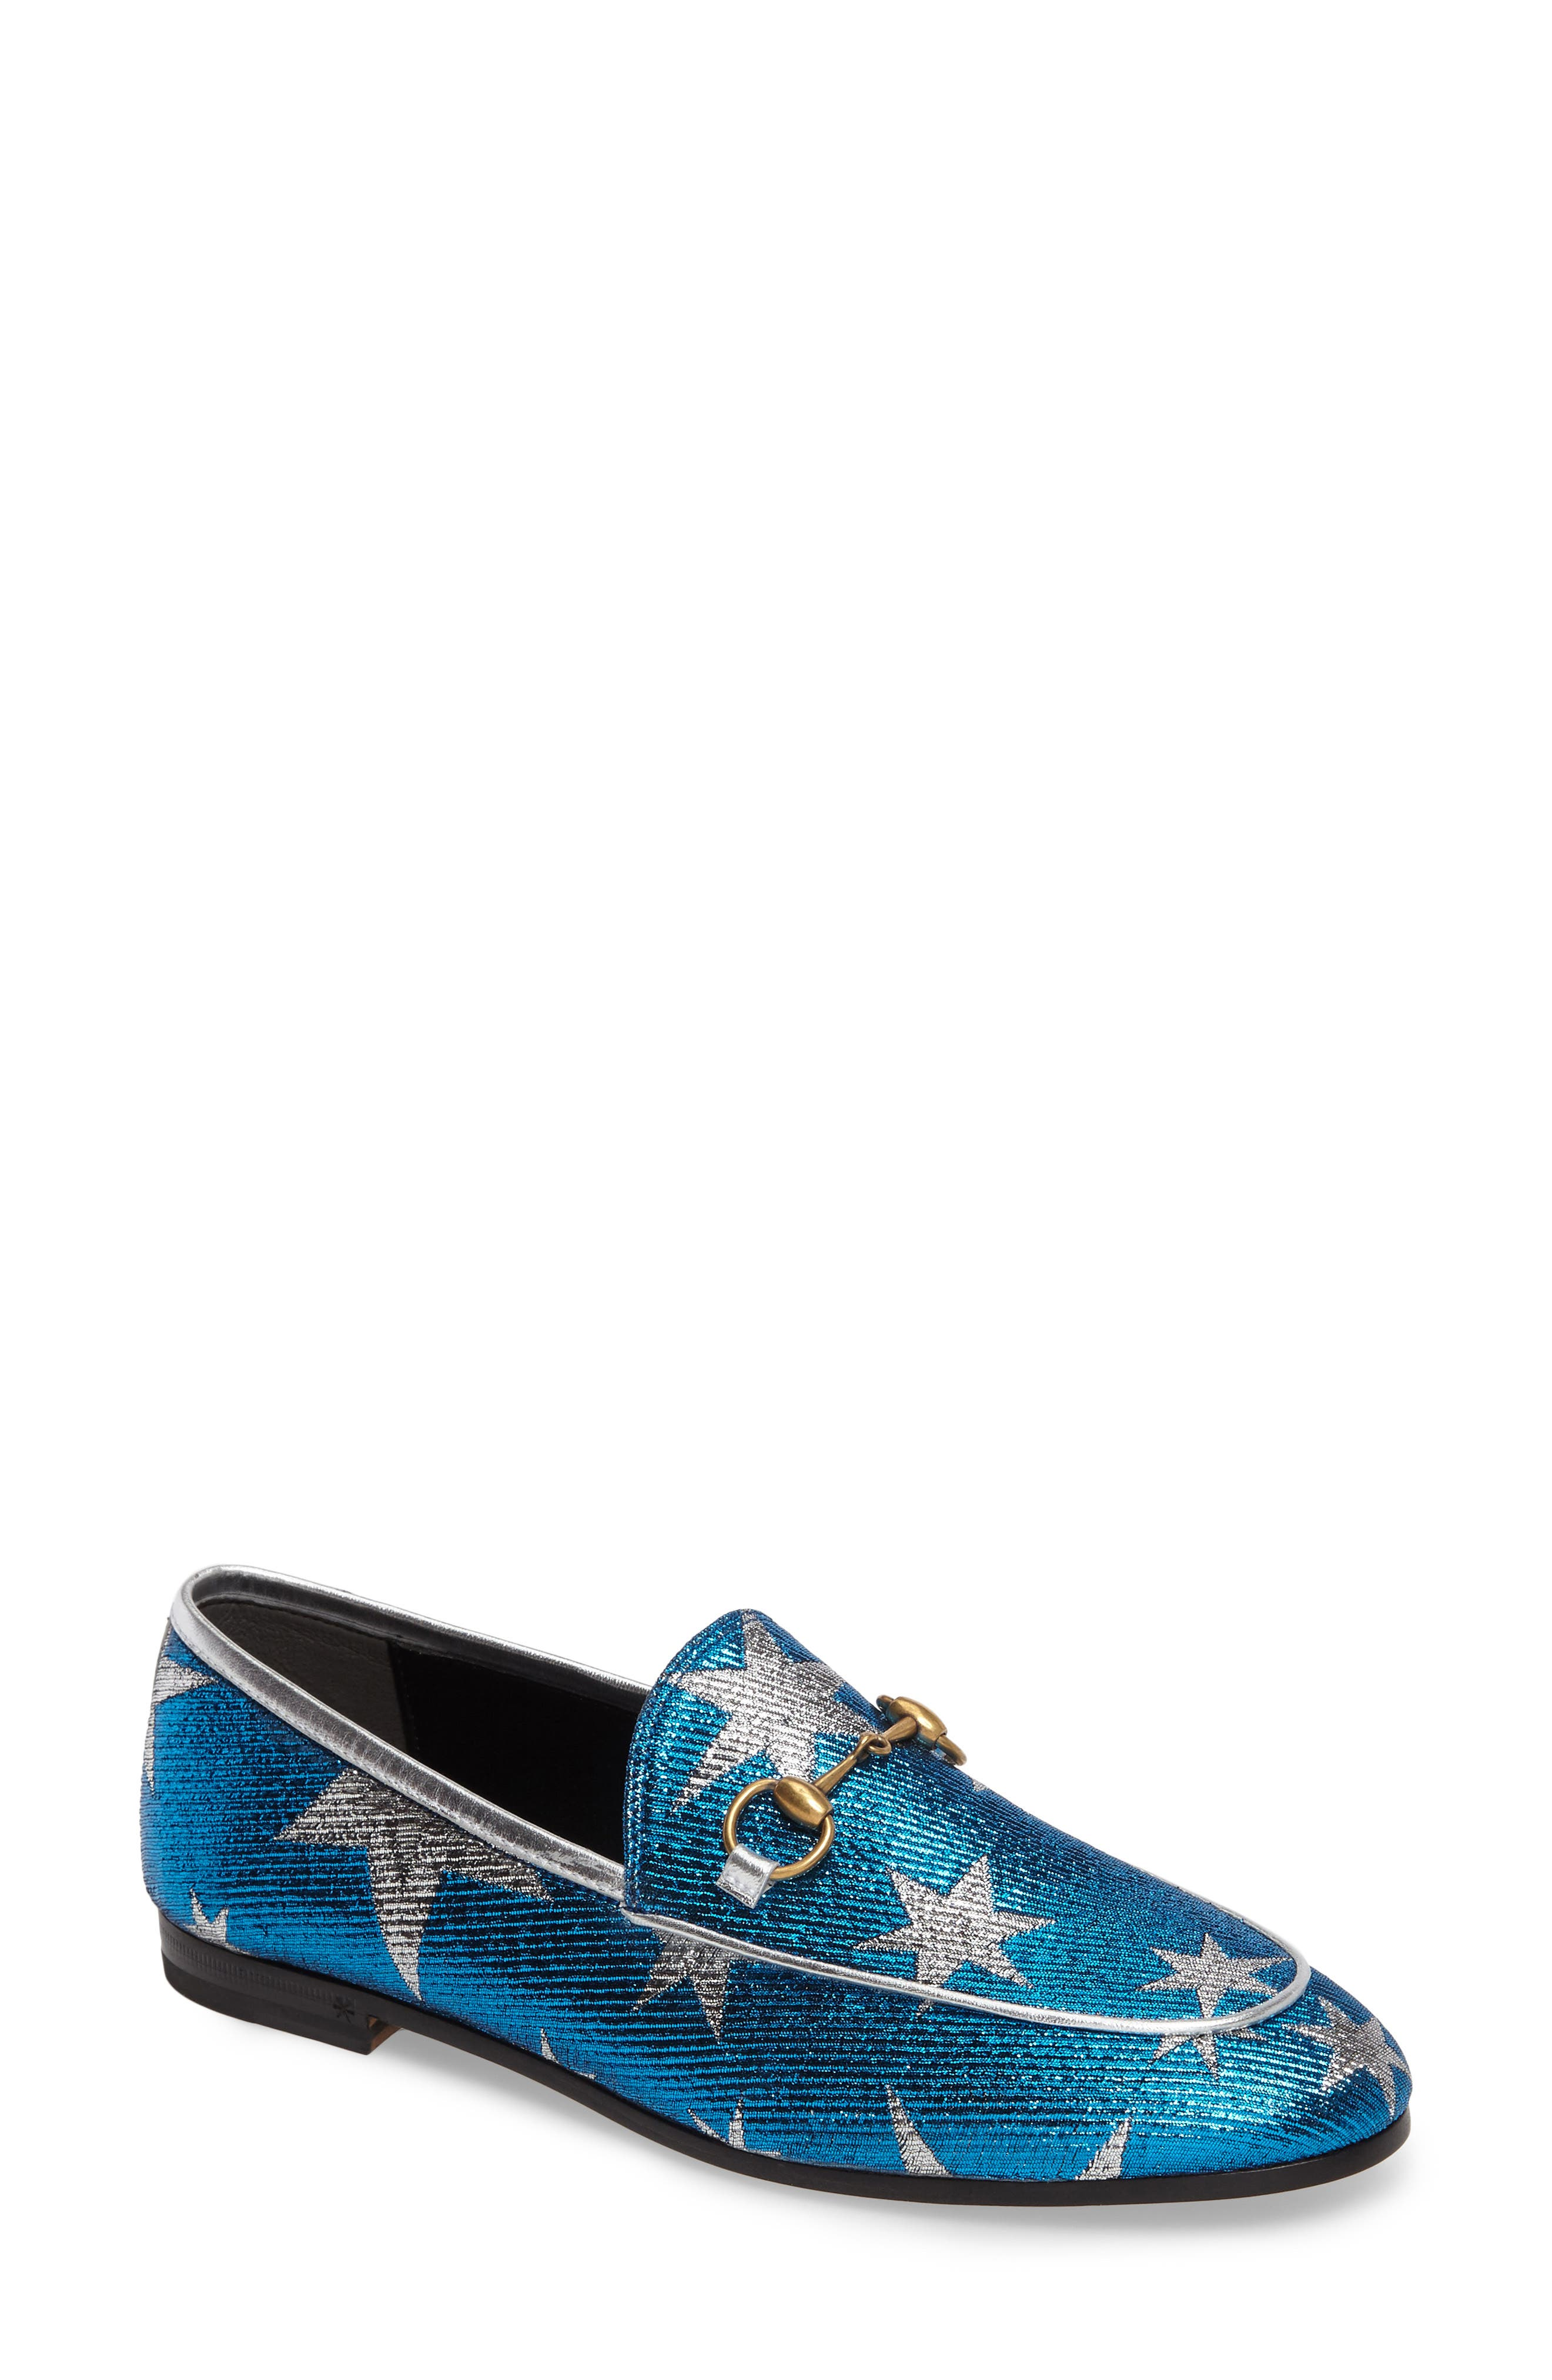 Brixton Star Loafer, Main, color, 424